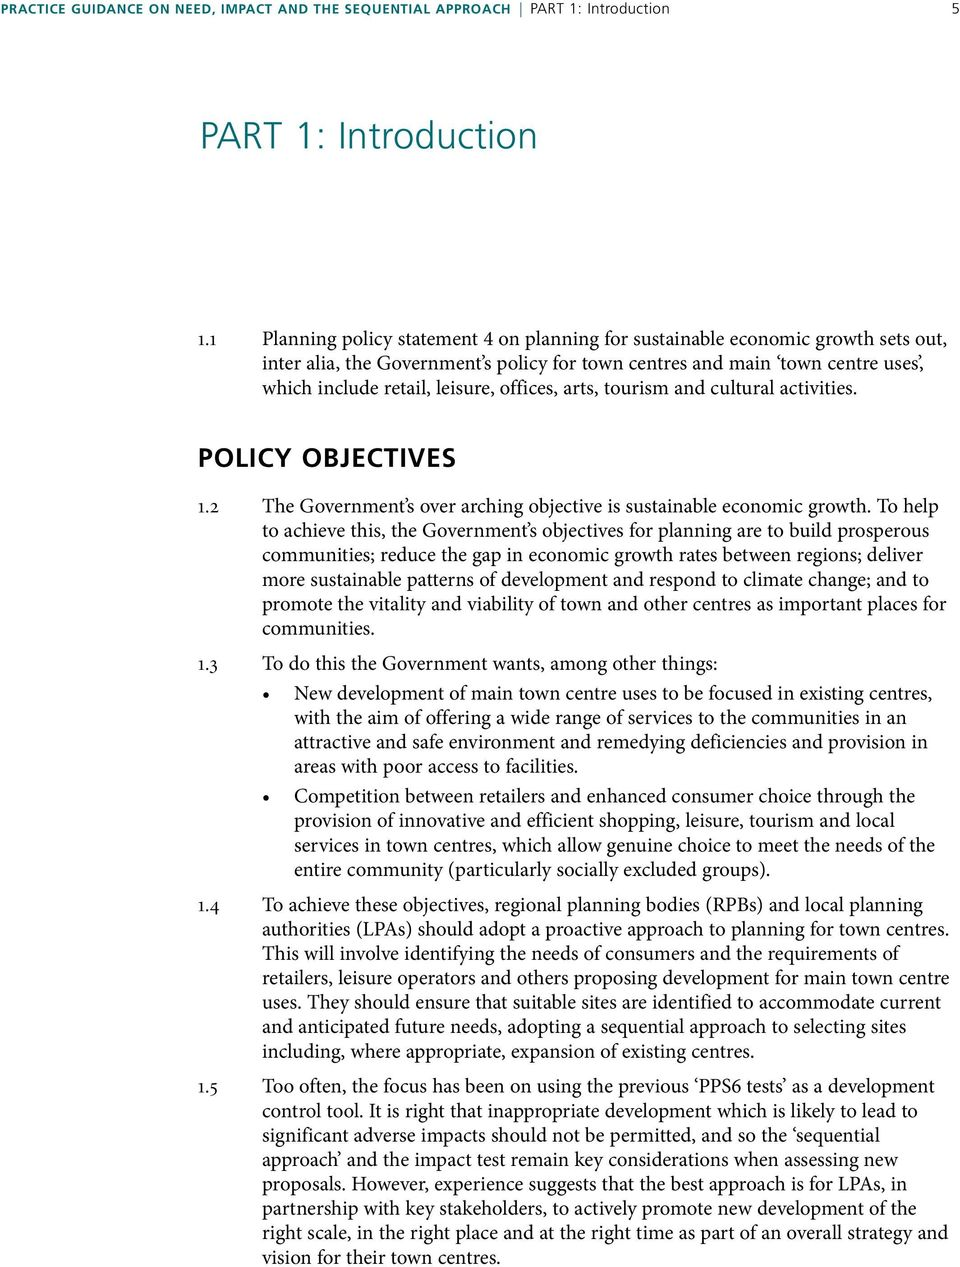 offices, arts, tourism and cultural activities. Policy objectives 1.2 1.3 1.4 1.5 The Government s over arching objective is sustainable economic growth.